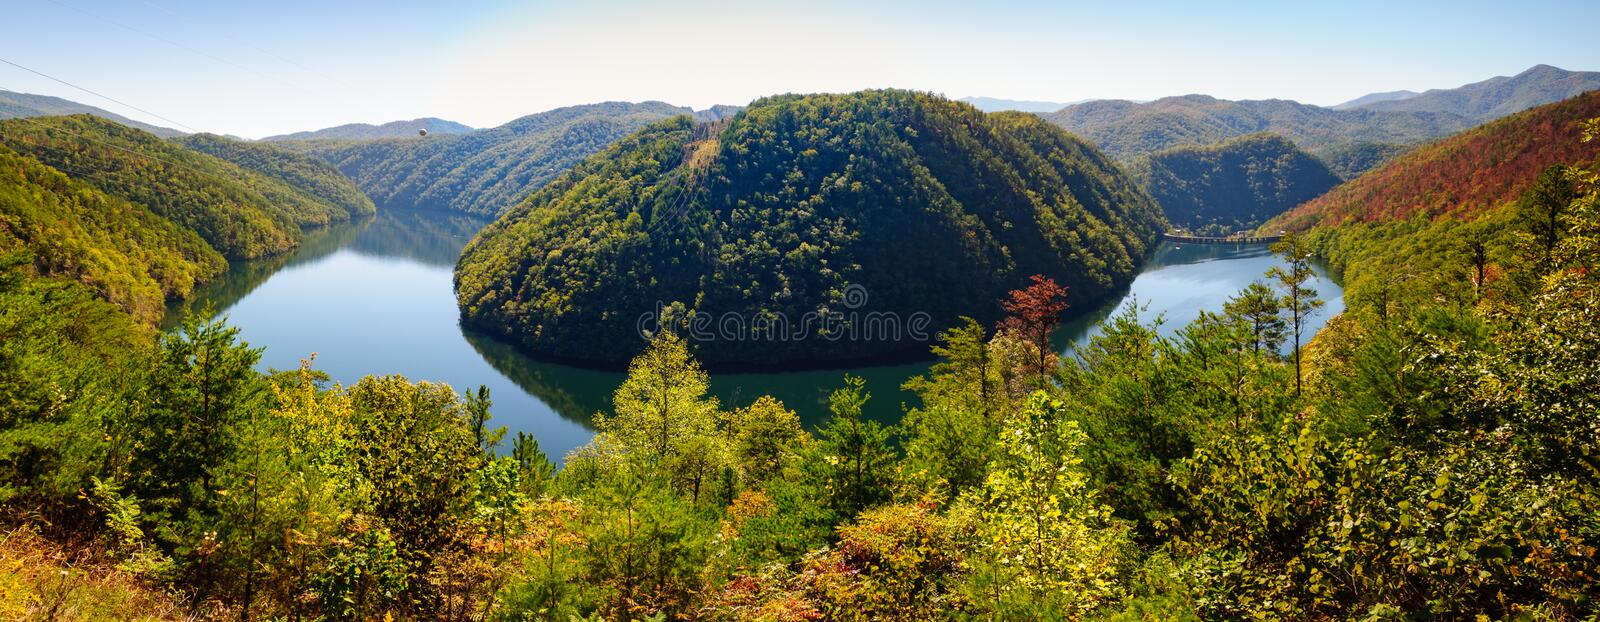 Parque nacional de Great Smoky Mountains do panorama, lago Calderwood fotografia de stock royalty free